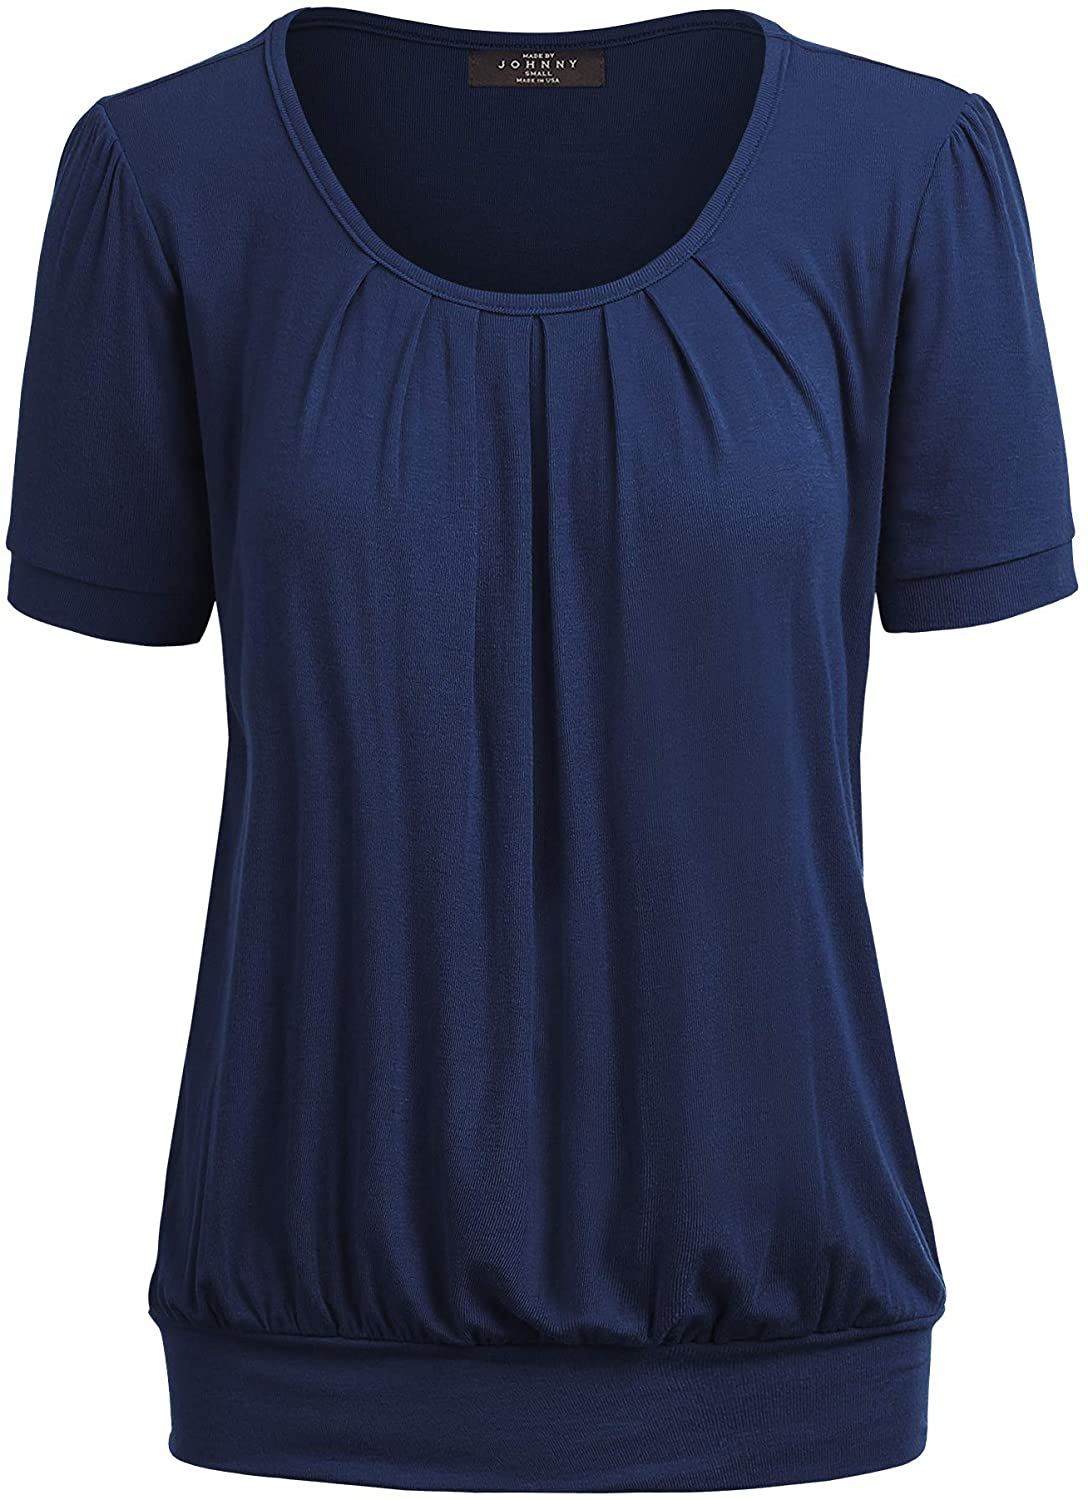 Made By Johnny Women's Scoop Neck Short Sleeve Front Pleated Blouse Tunic top S-3XL Plus Size Made in U.S.A.